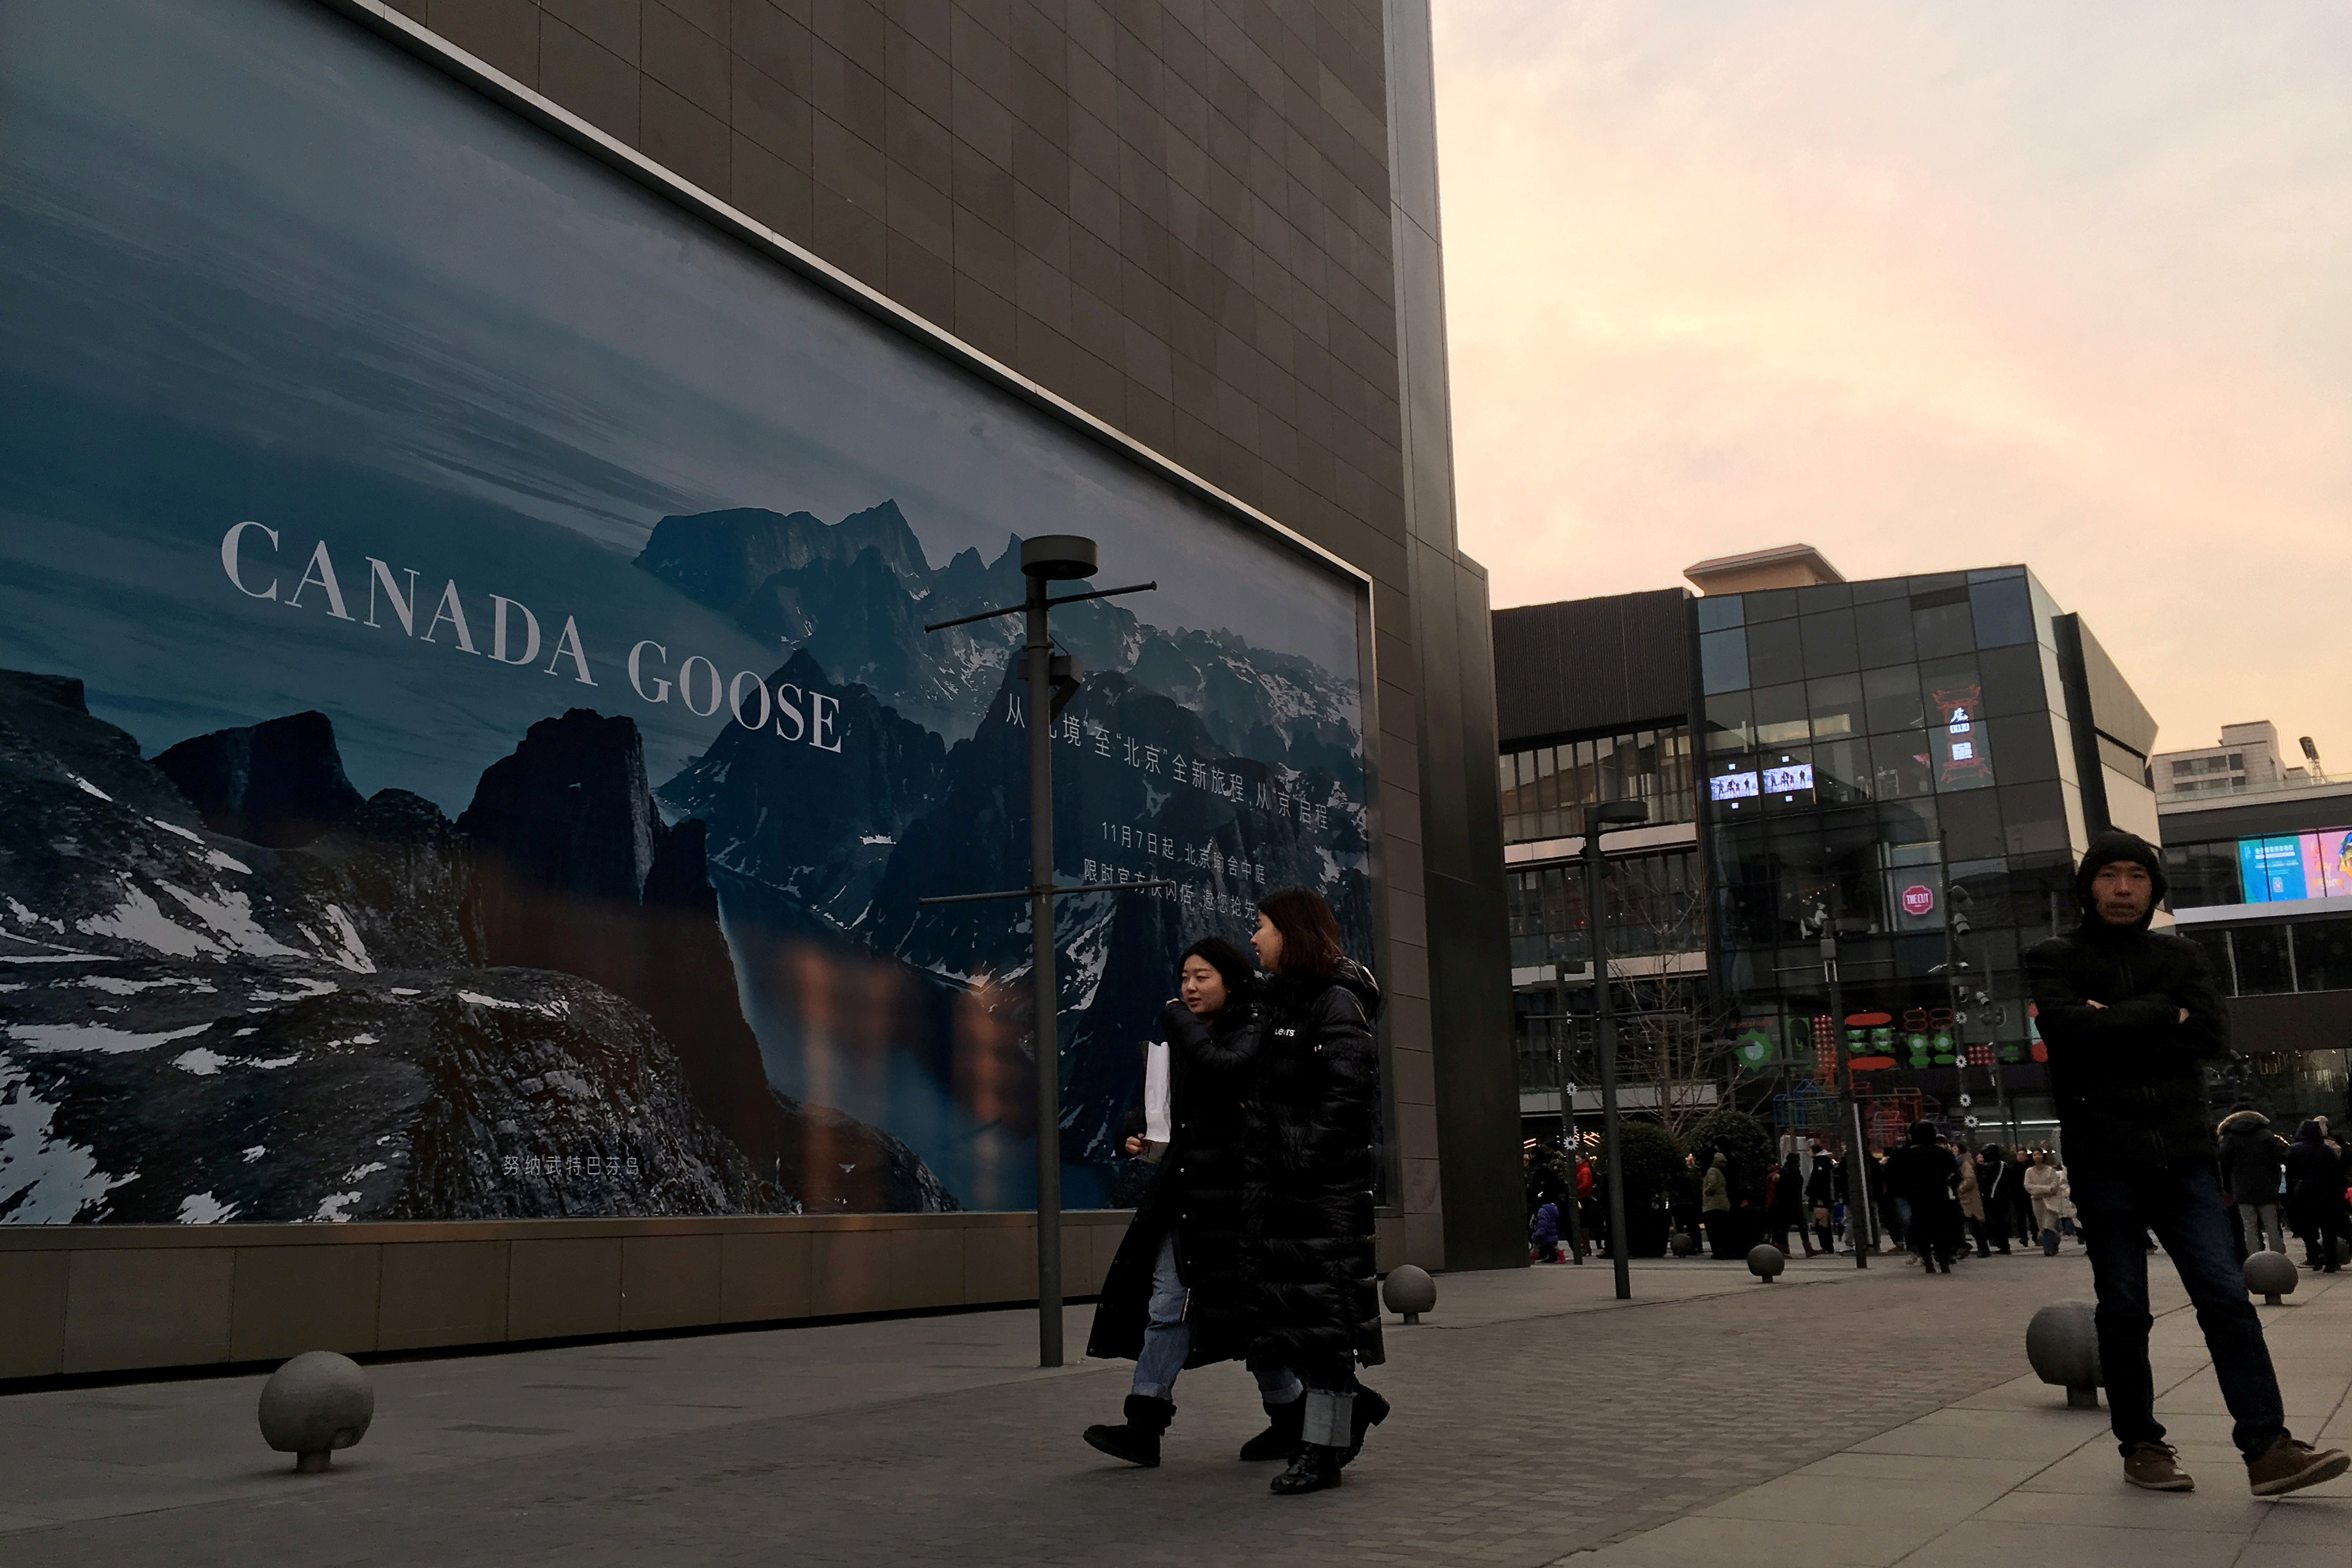 People walk past an advertisement near the flagship store of Canadian luxury parka maker Canada Goose, in Sanlitun area of Beijing, China December 31, 2018. REUTERS/Martin Pollard